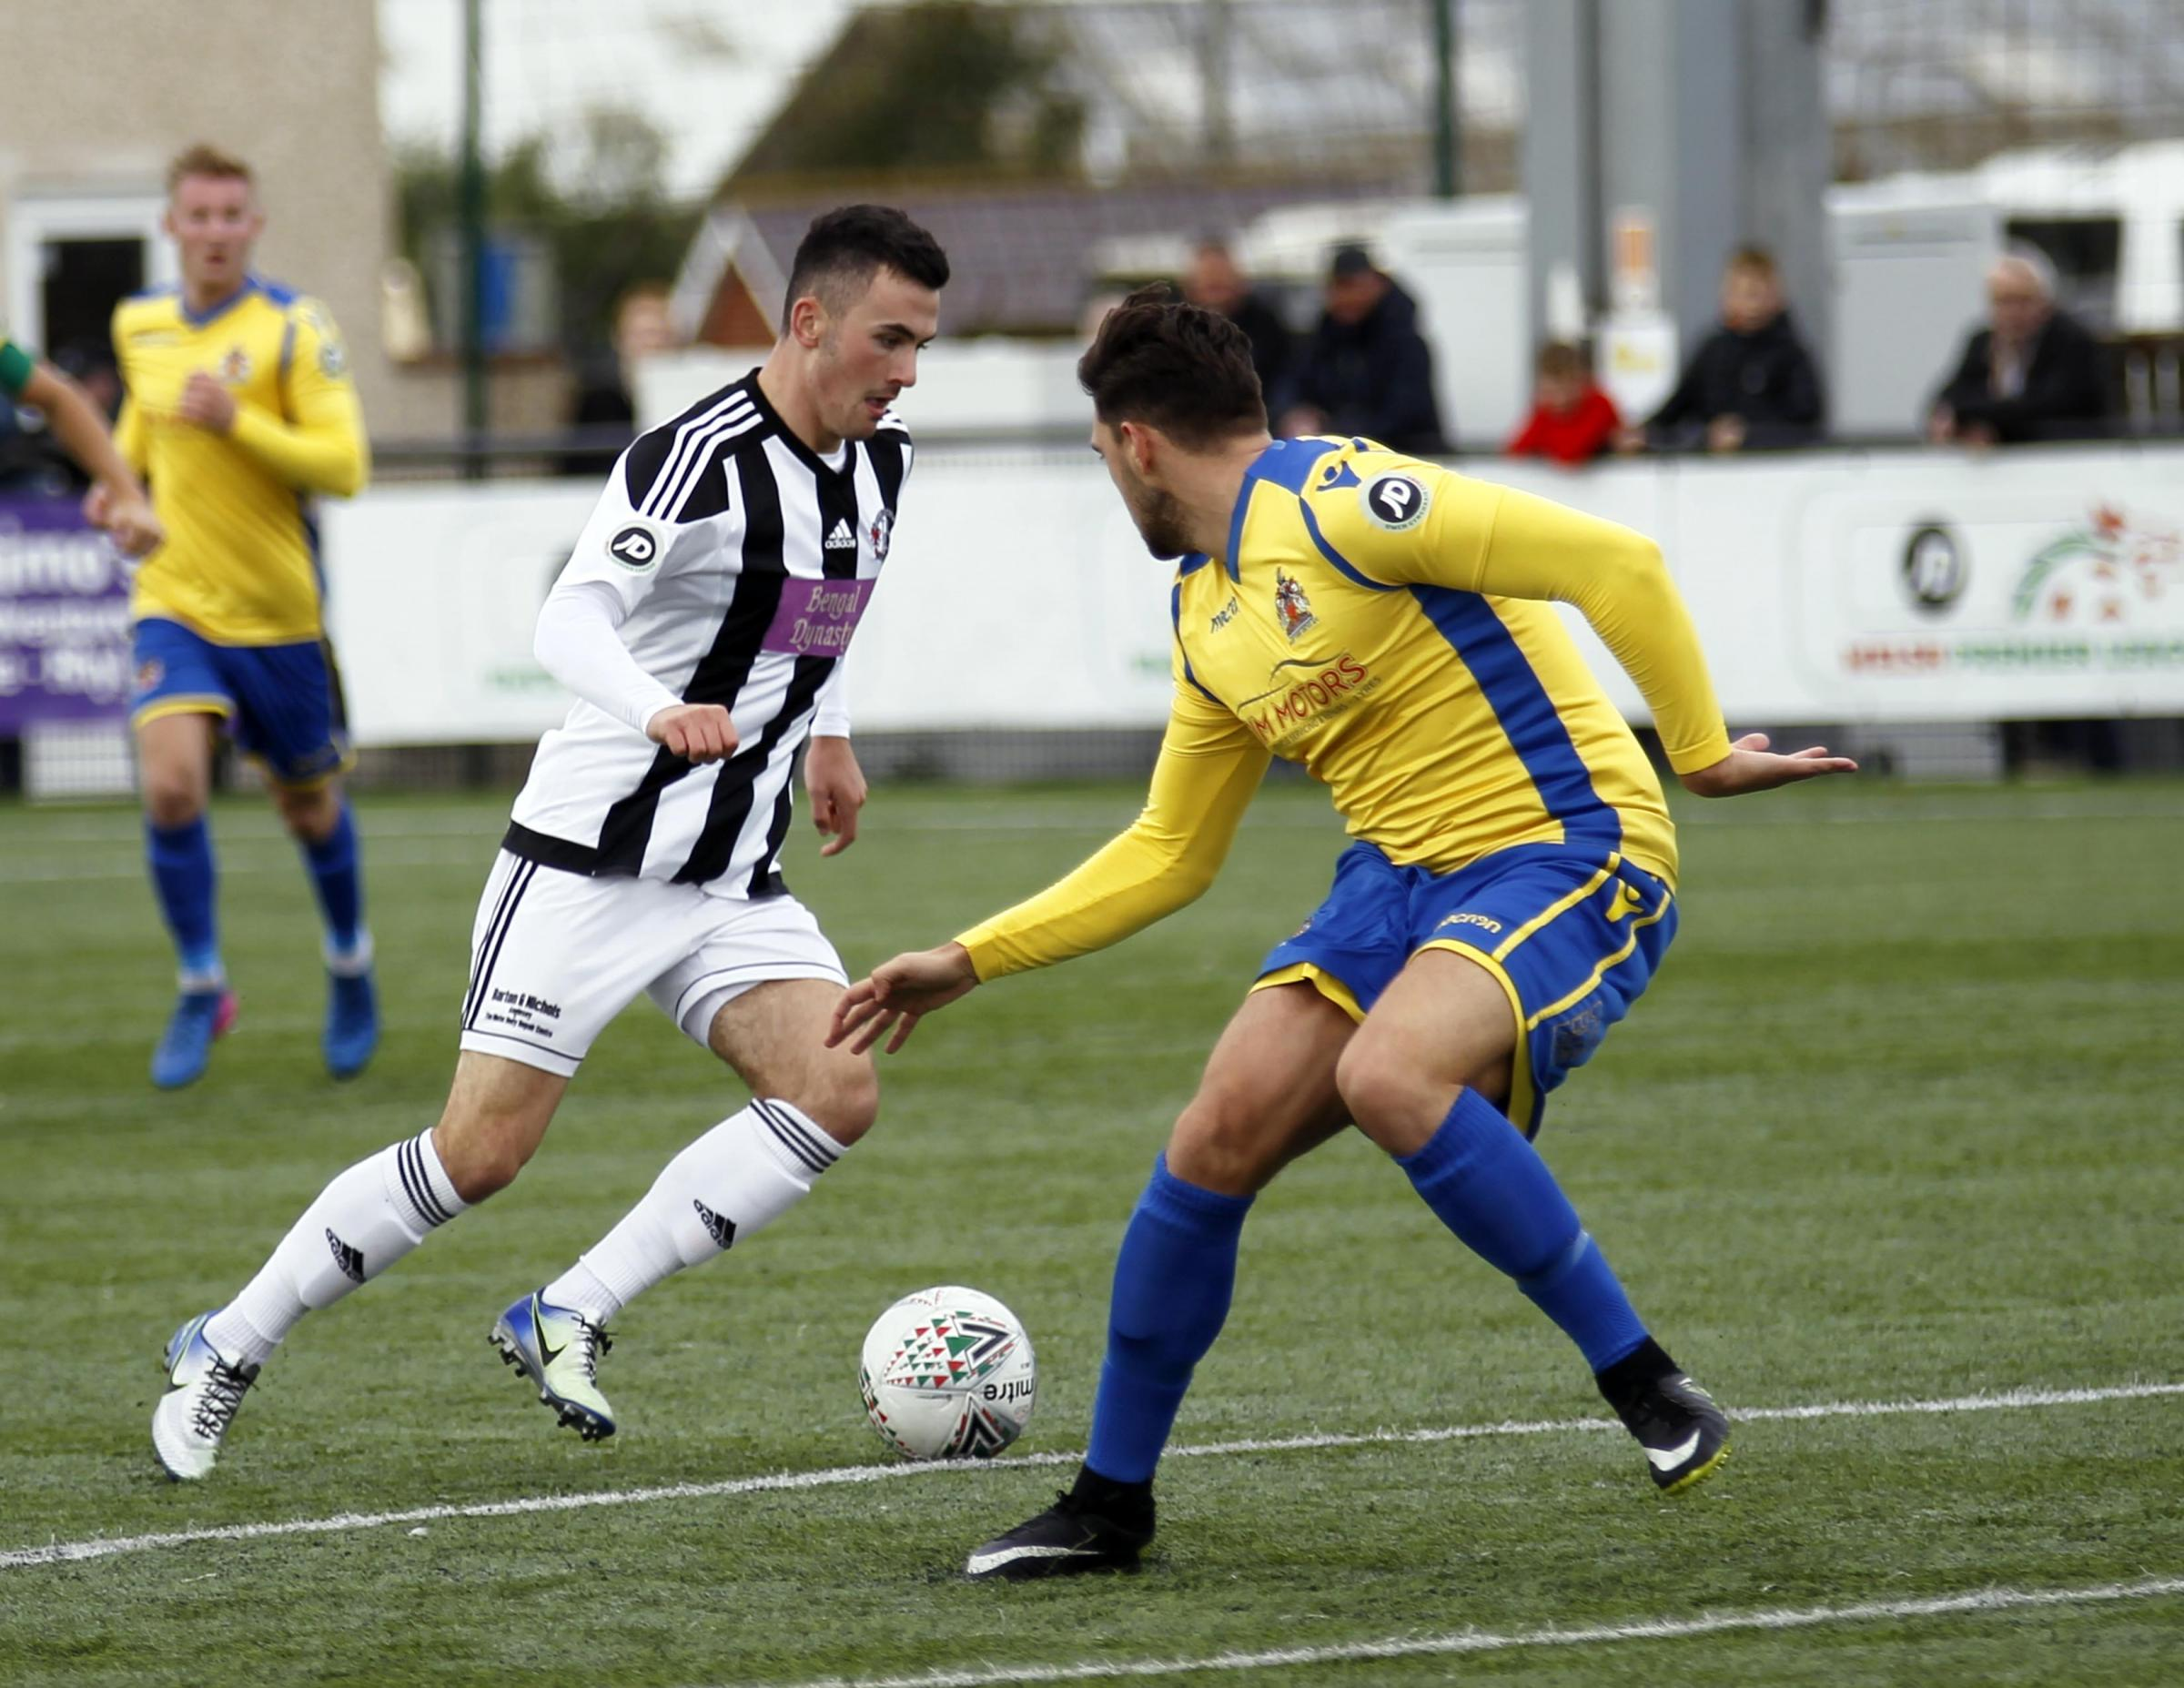 Llandudno forward John Owen on the attack (Photo: Dave Thomas)